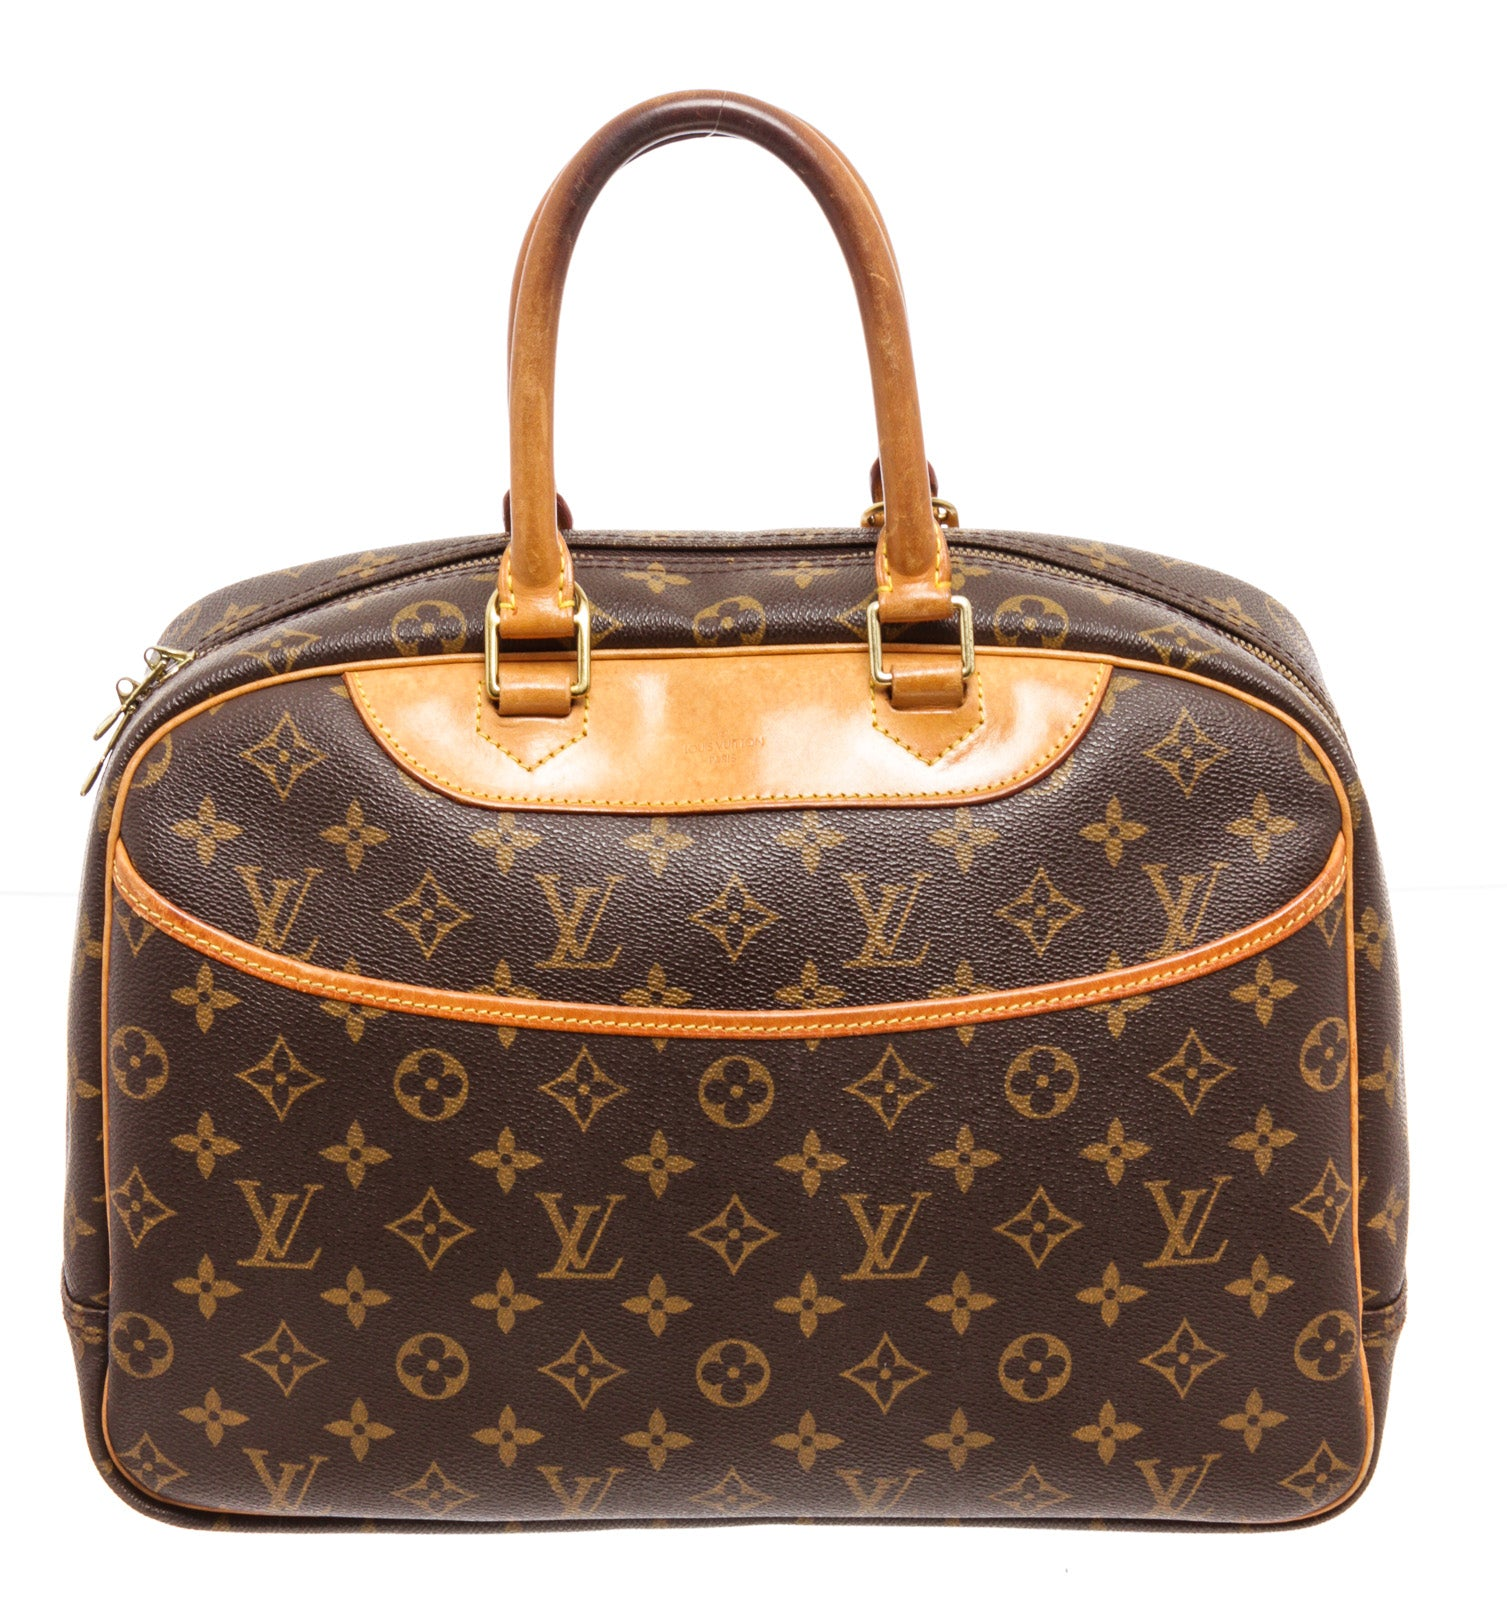 Louis Vuitton Brown Monogram Deauville Handbag